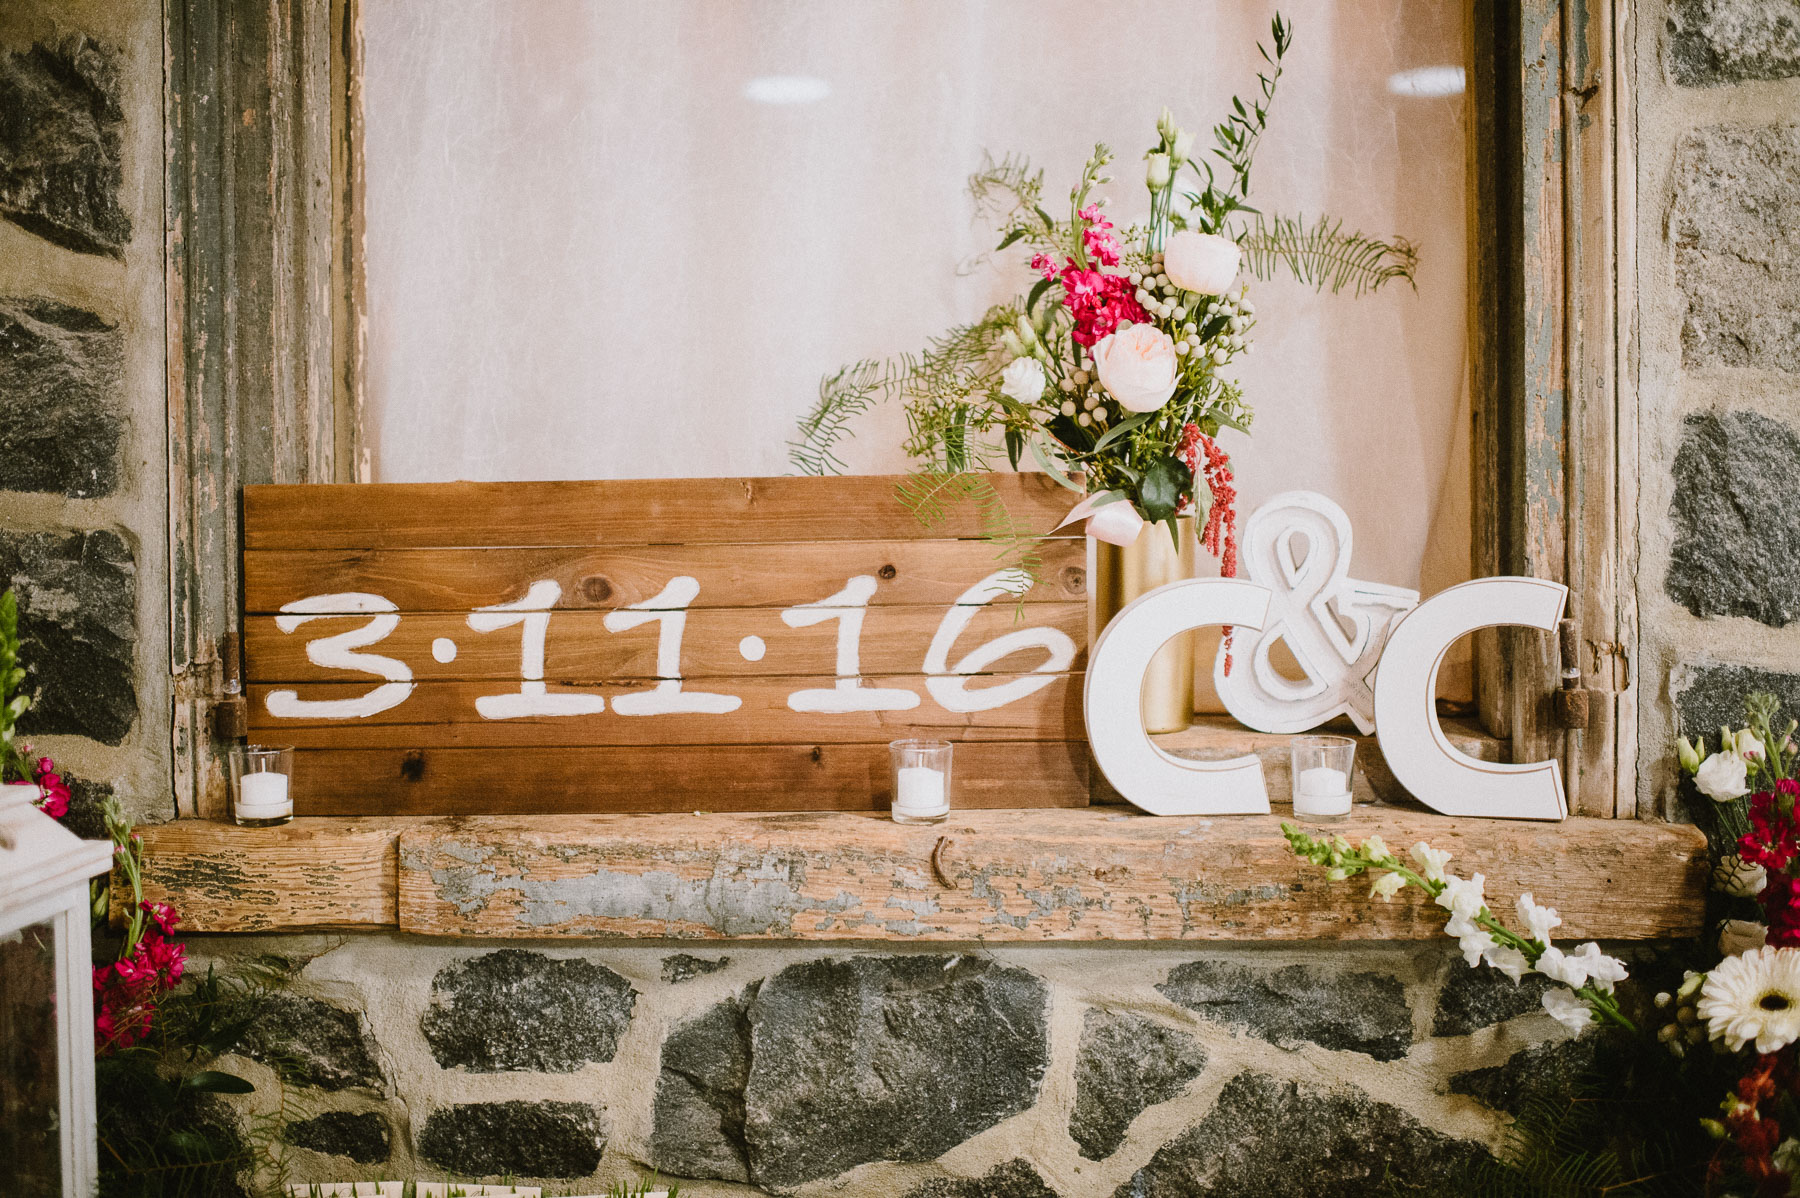 The_Carriage_House_at_Rockwood_Park_wedding_photo070.jpg